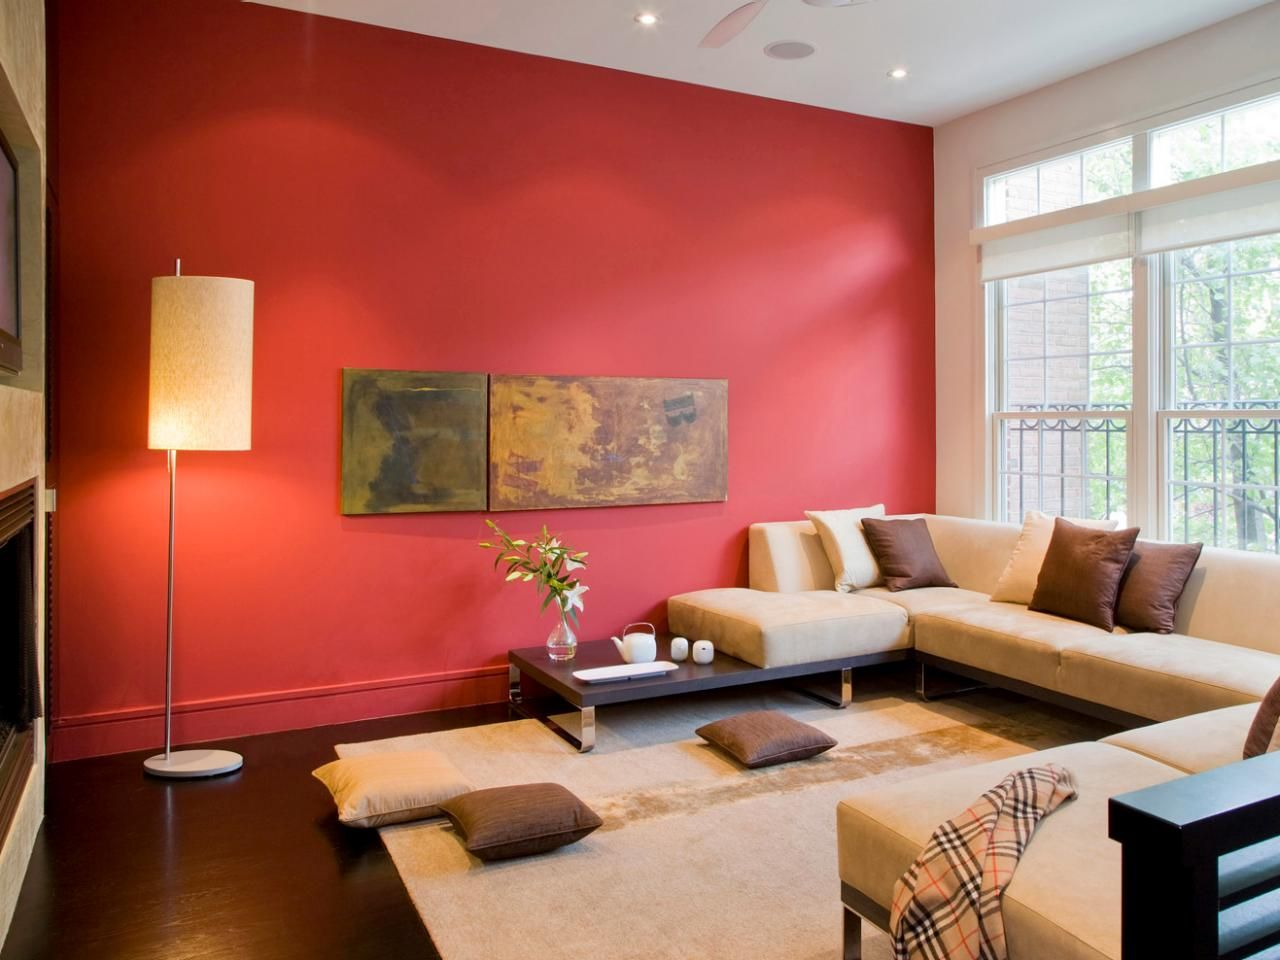 10 Tips for Picking Paint Colors | Hgtv, Quilt cover and Walls